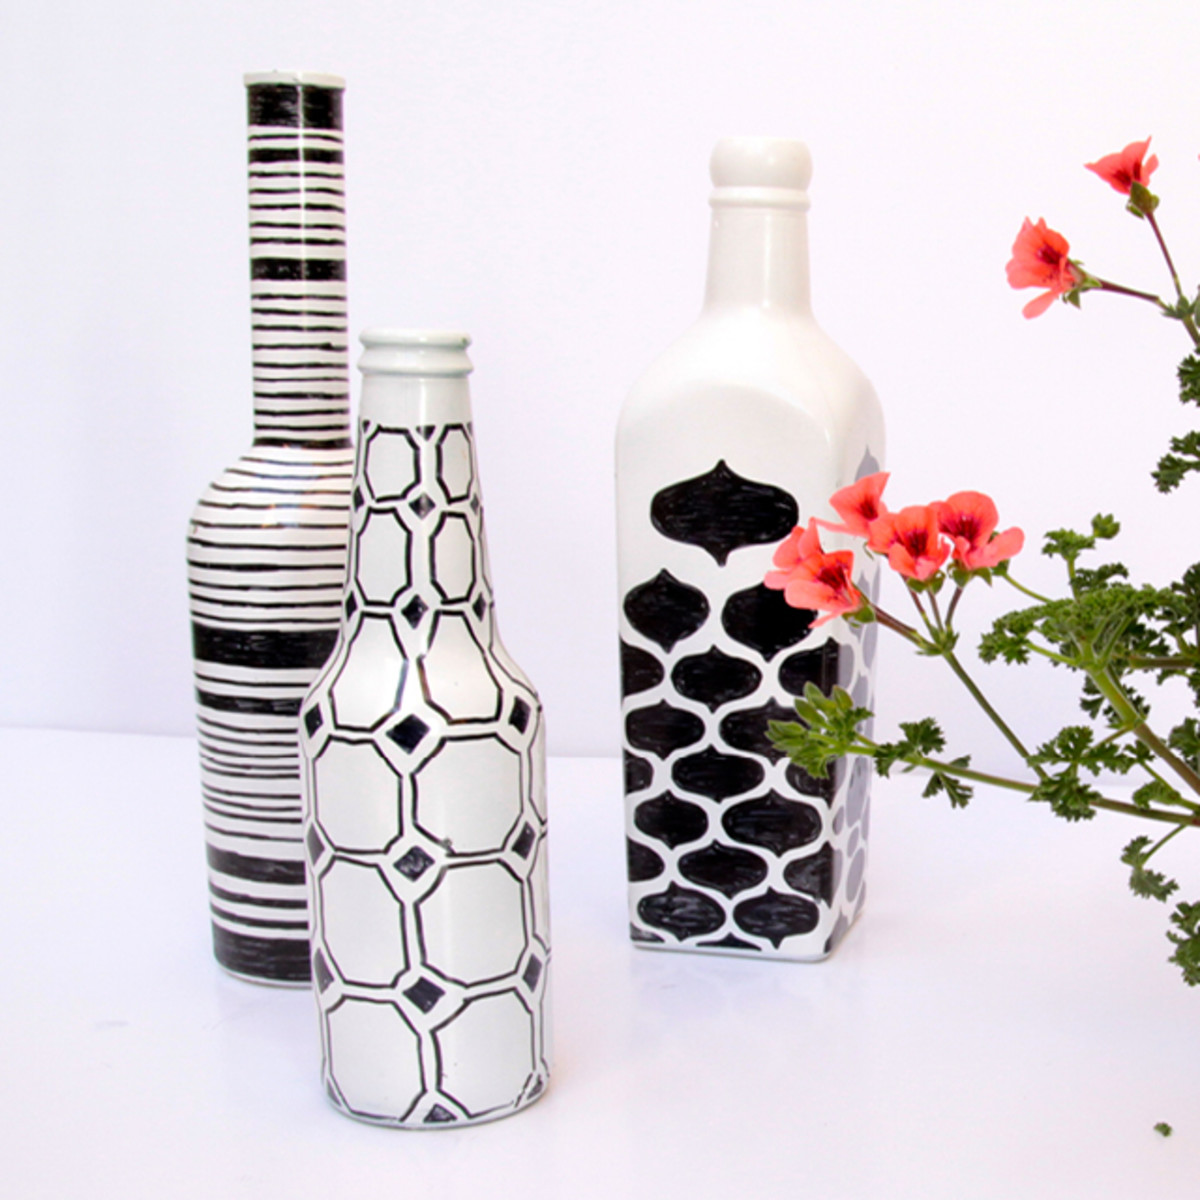 Recycle beer and oil bottles for home decor